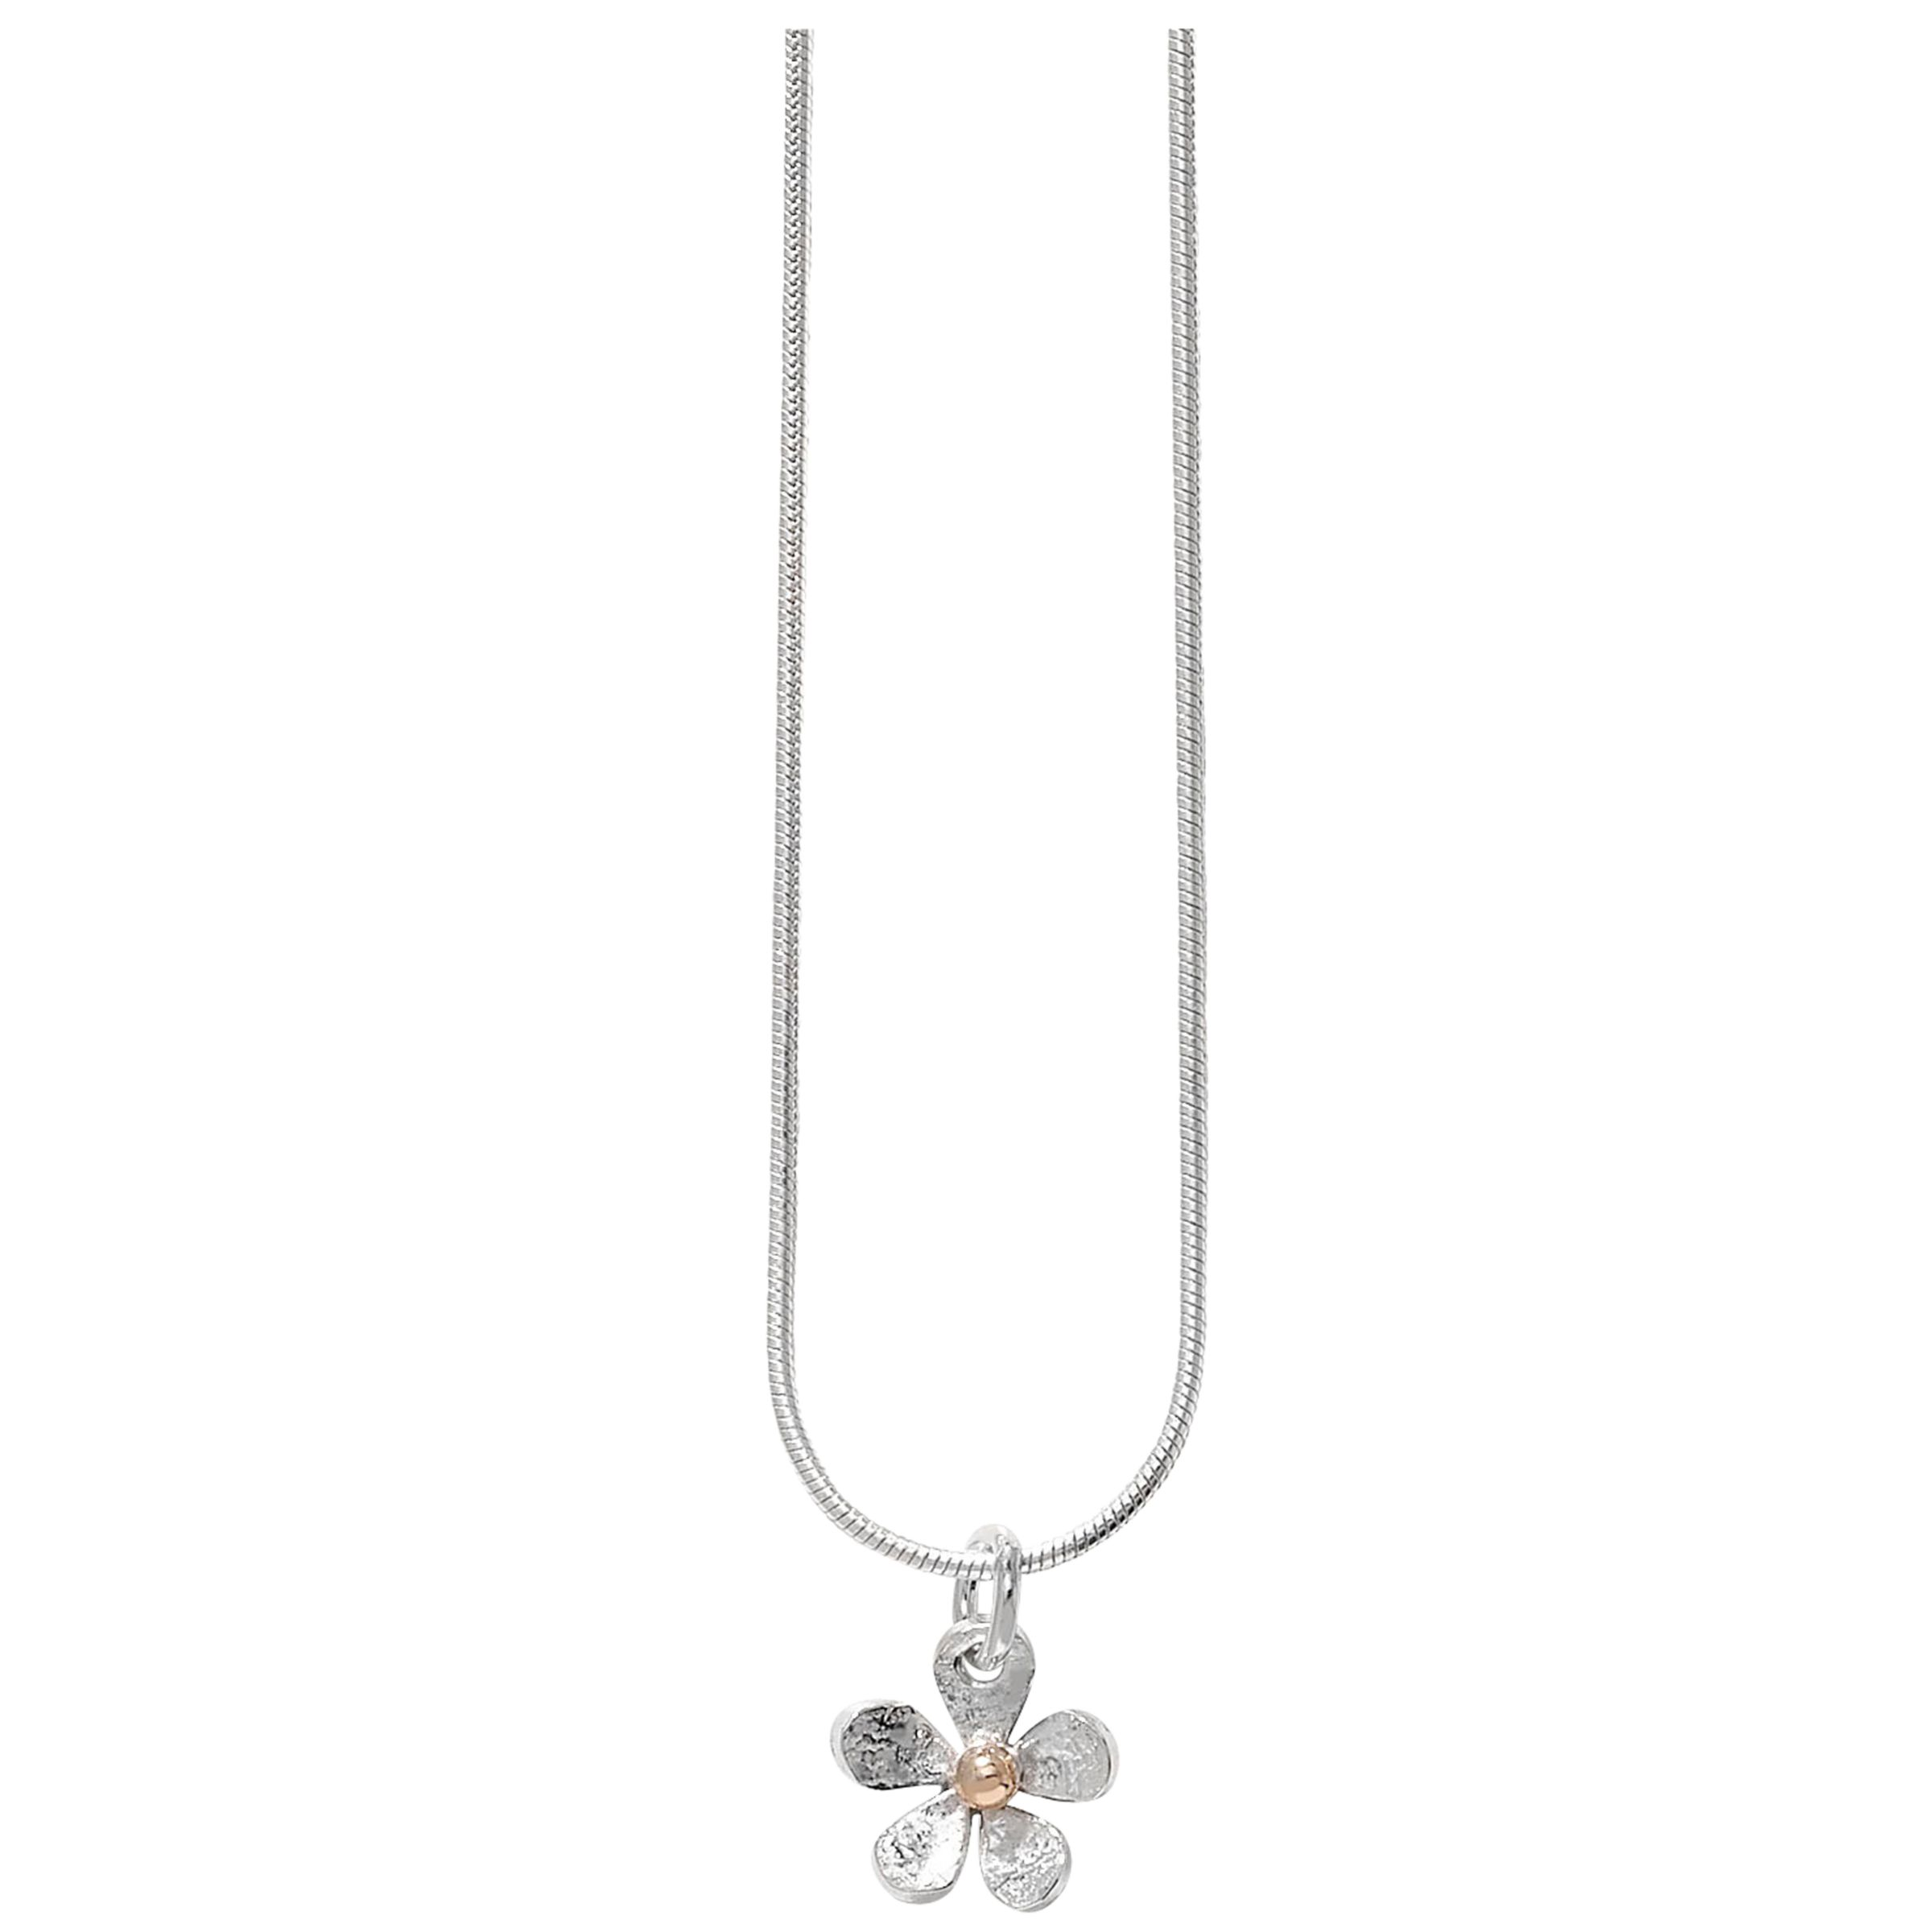 Linda Macdonald Daisies Necklace